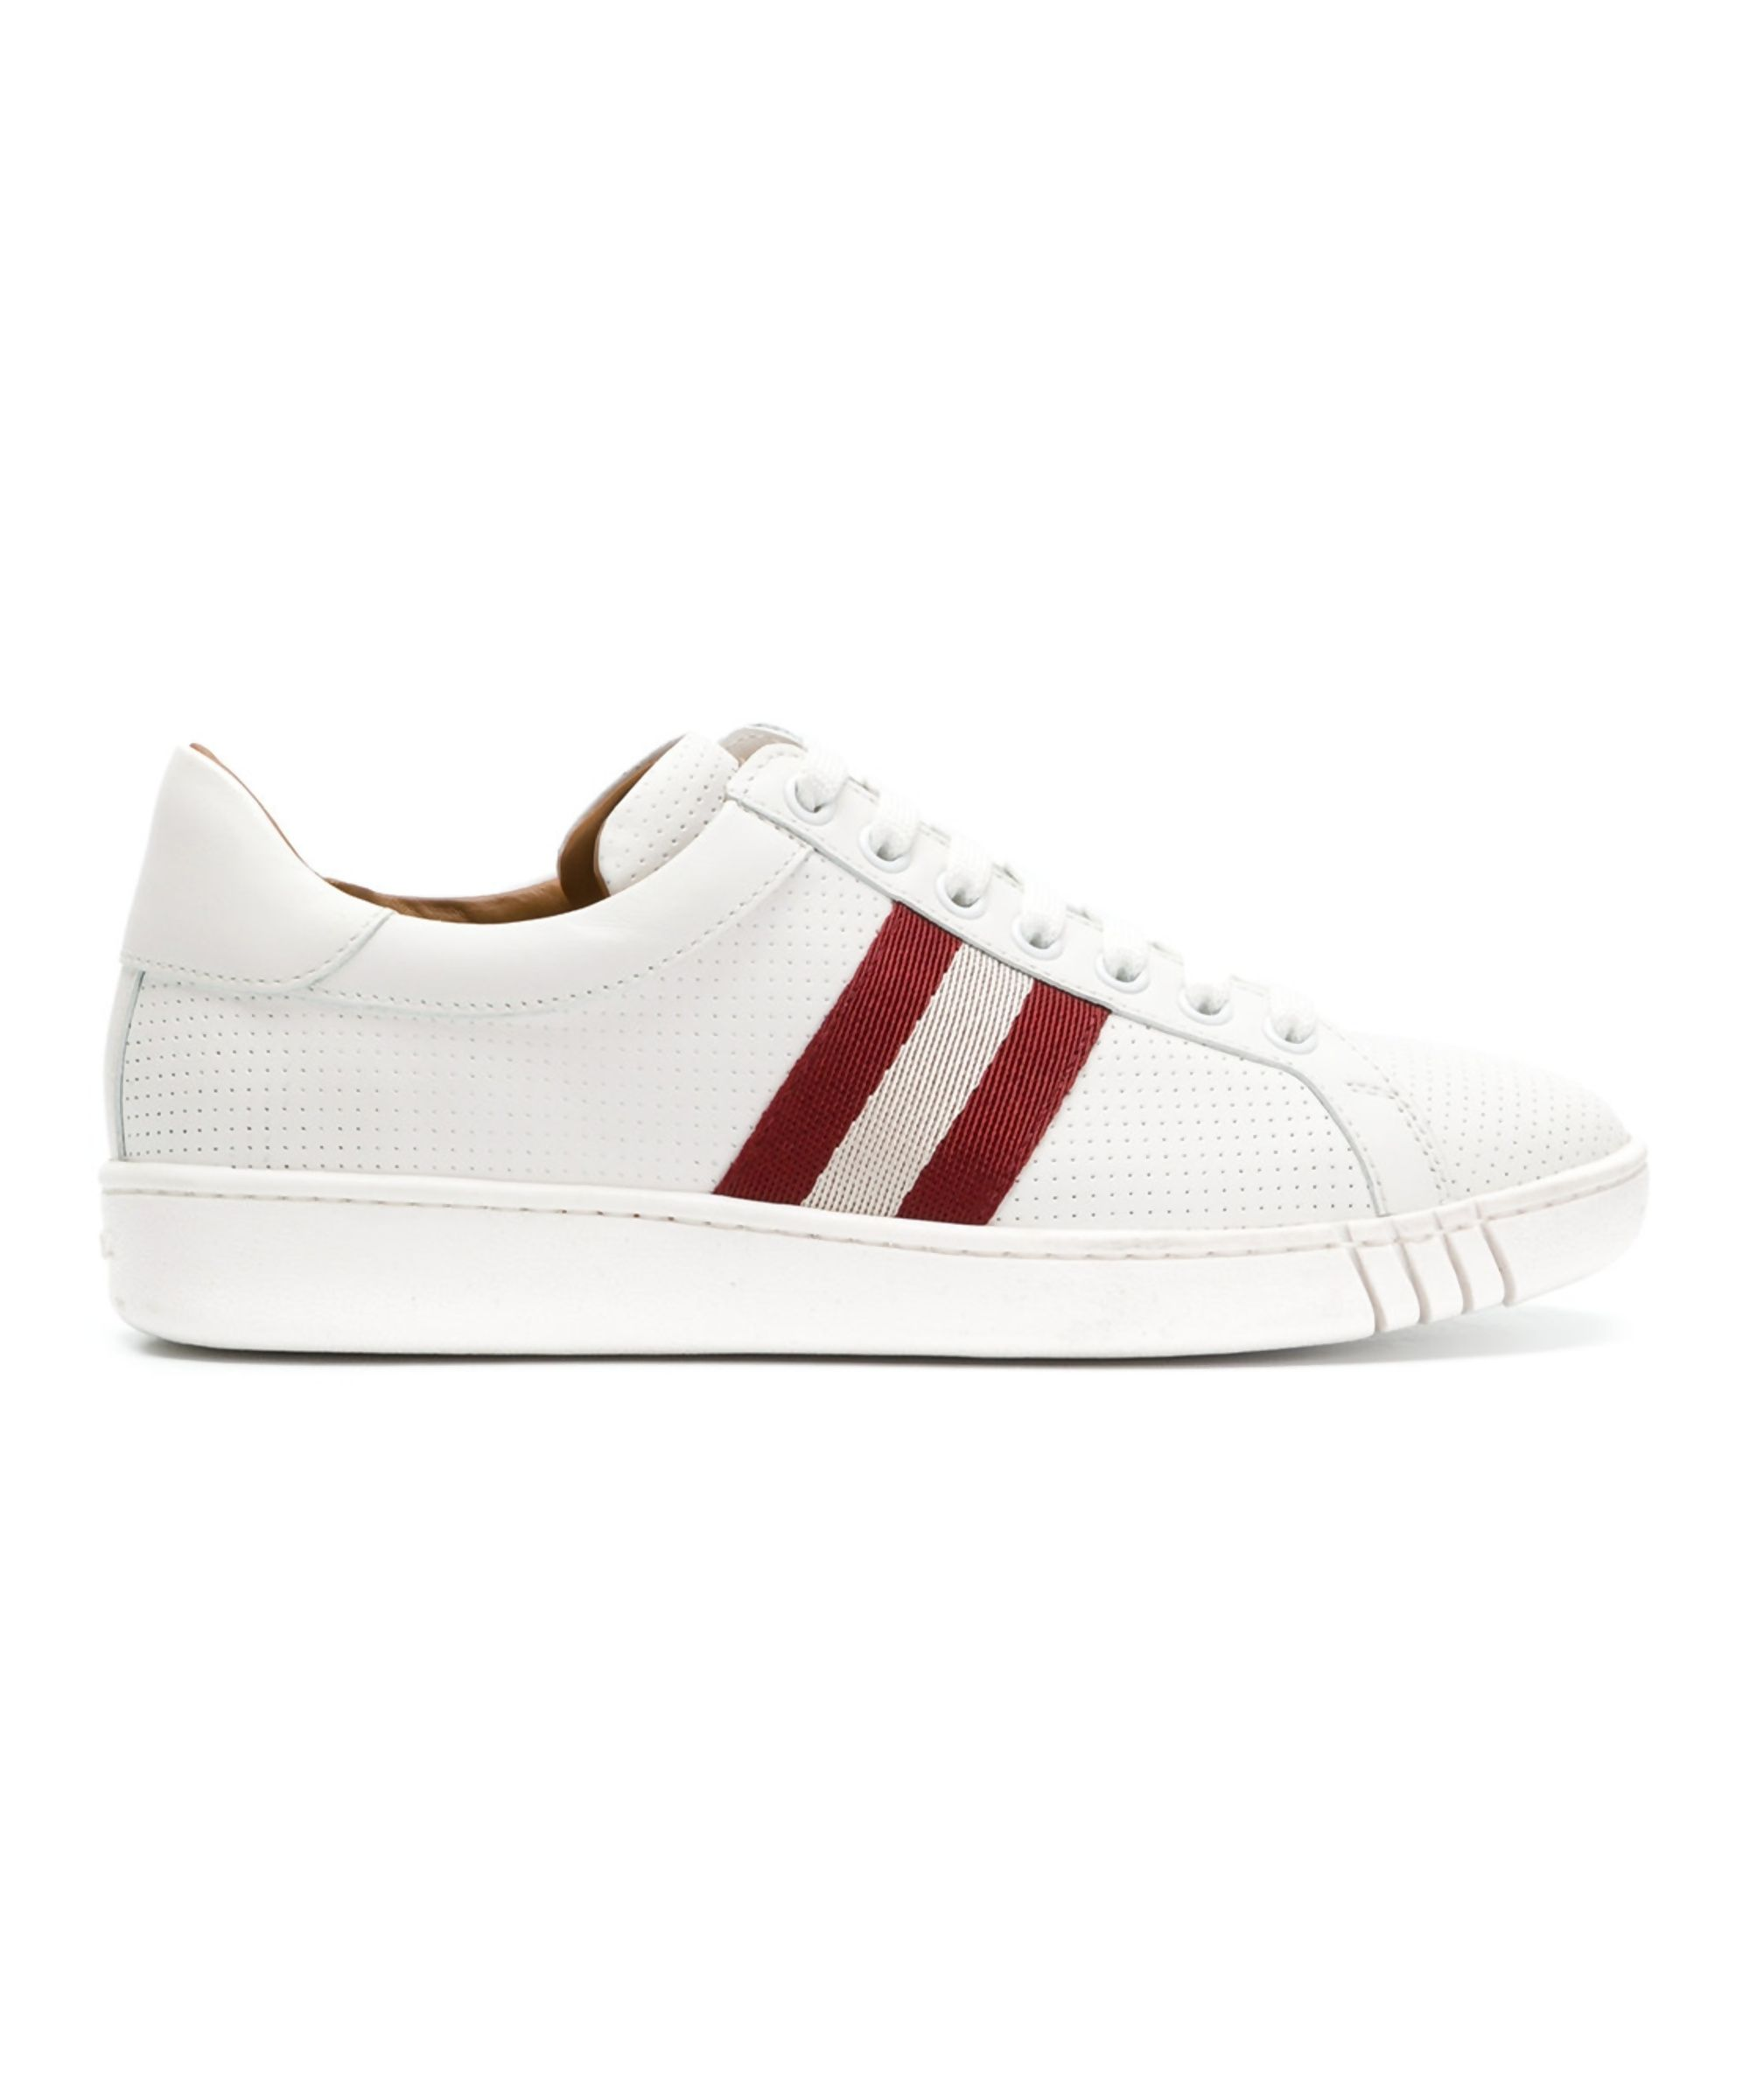 Bally Women's White Leather Sneakers